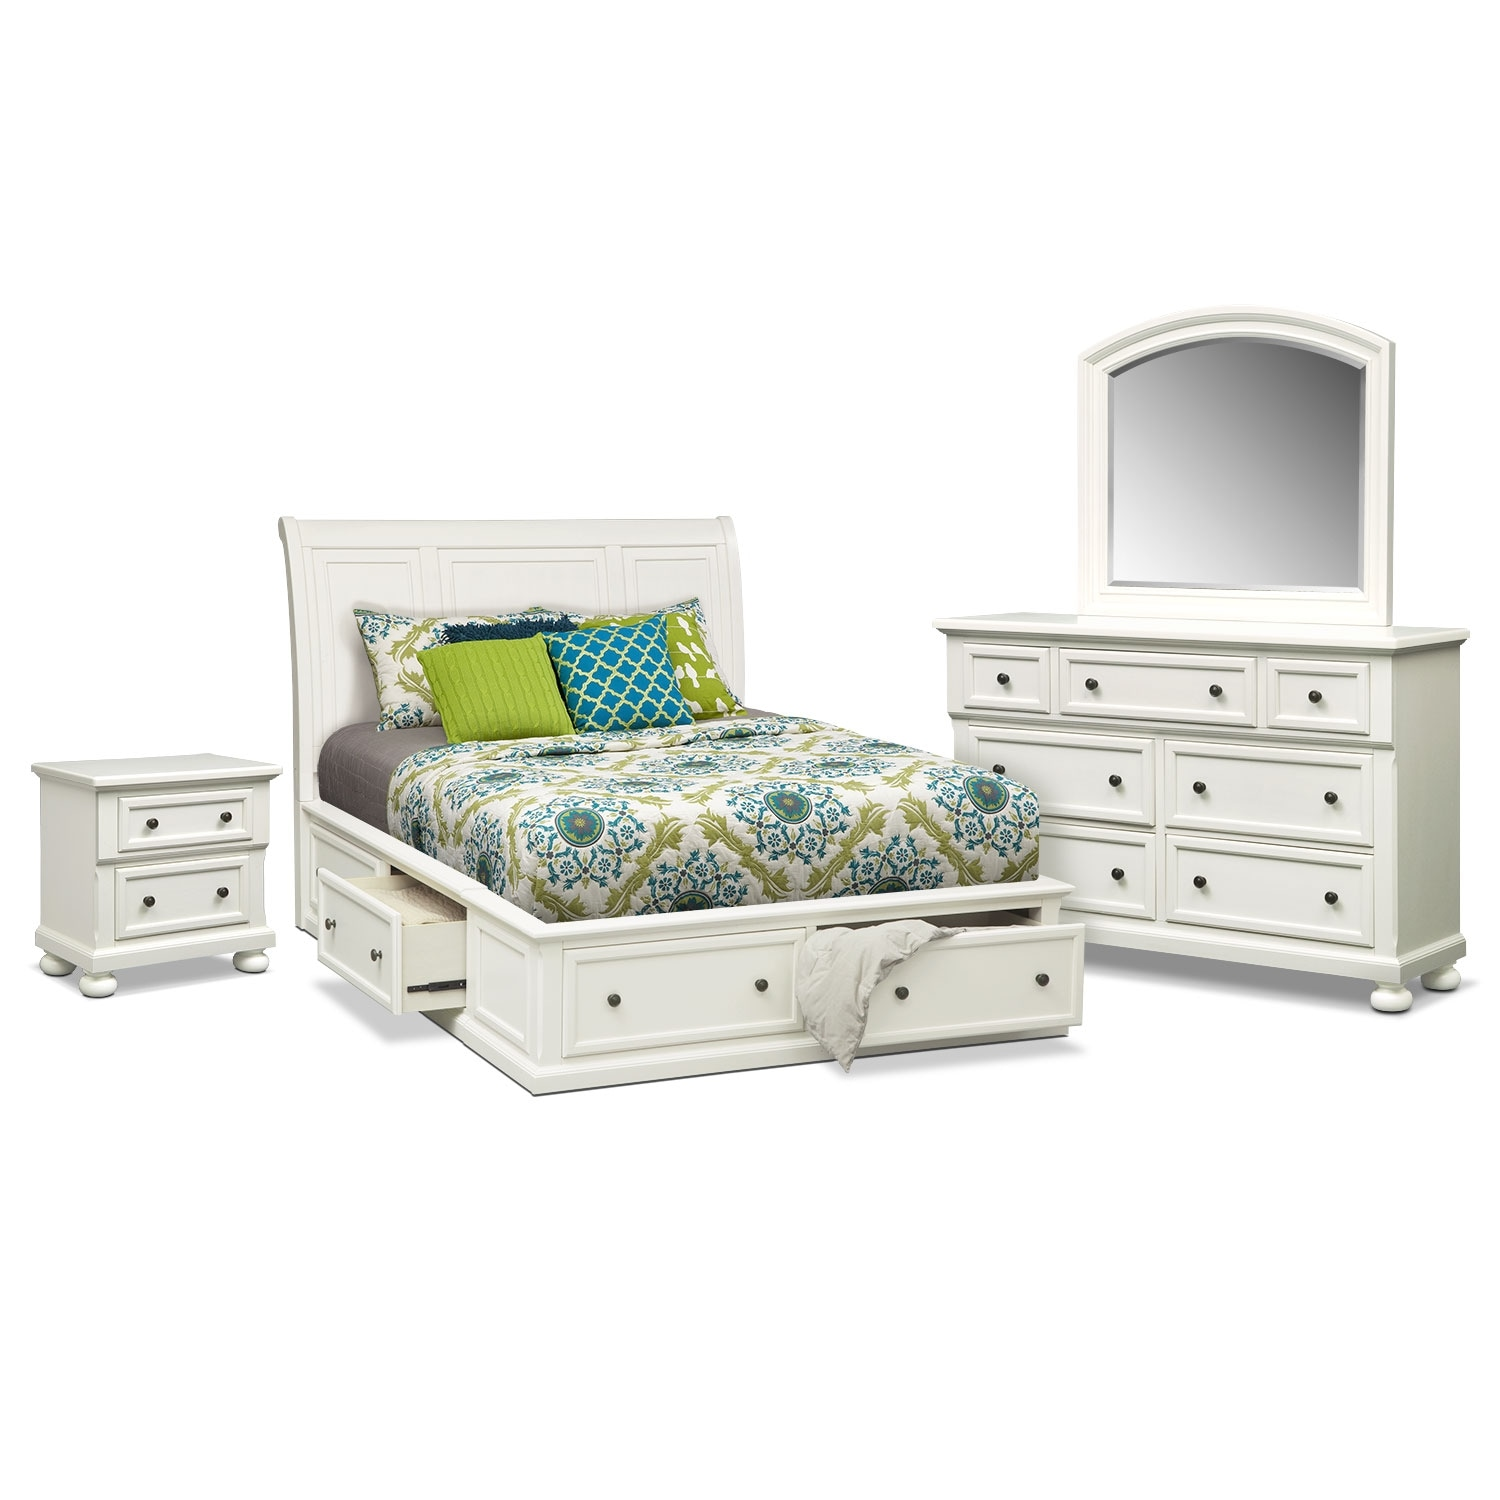 Bedroom Furniture - Hanover 6-Piece King Storage Bedroom Set - White